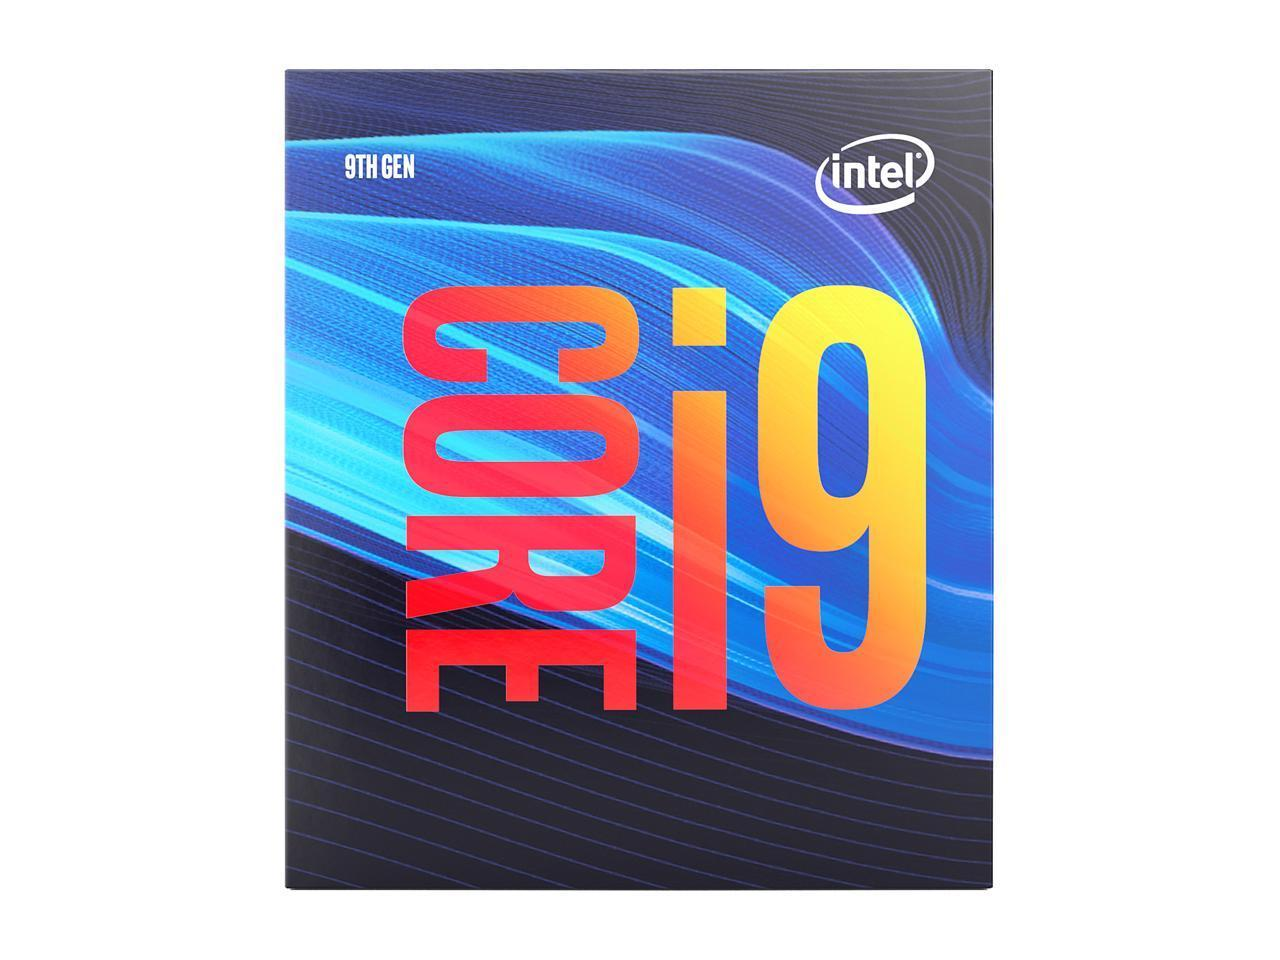 Процесор Intel Coffee Lake Core i9-9900 3.10GHz (up to 5.00GHz), 16MB, 65W,  LGA1151 (300 Series)